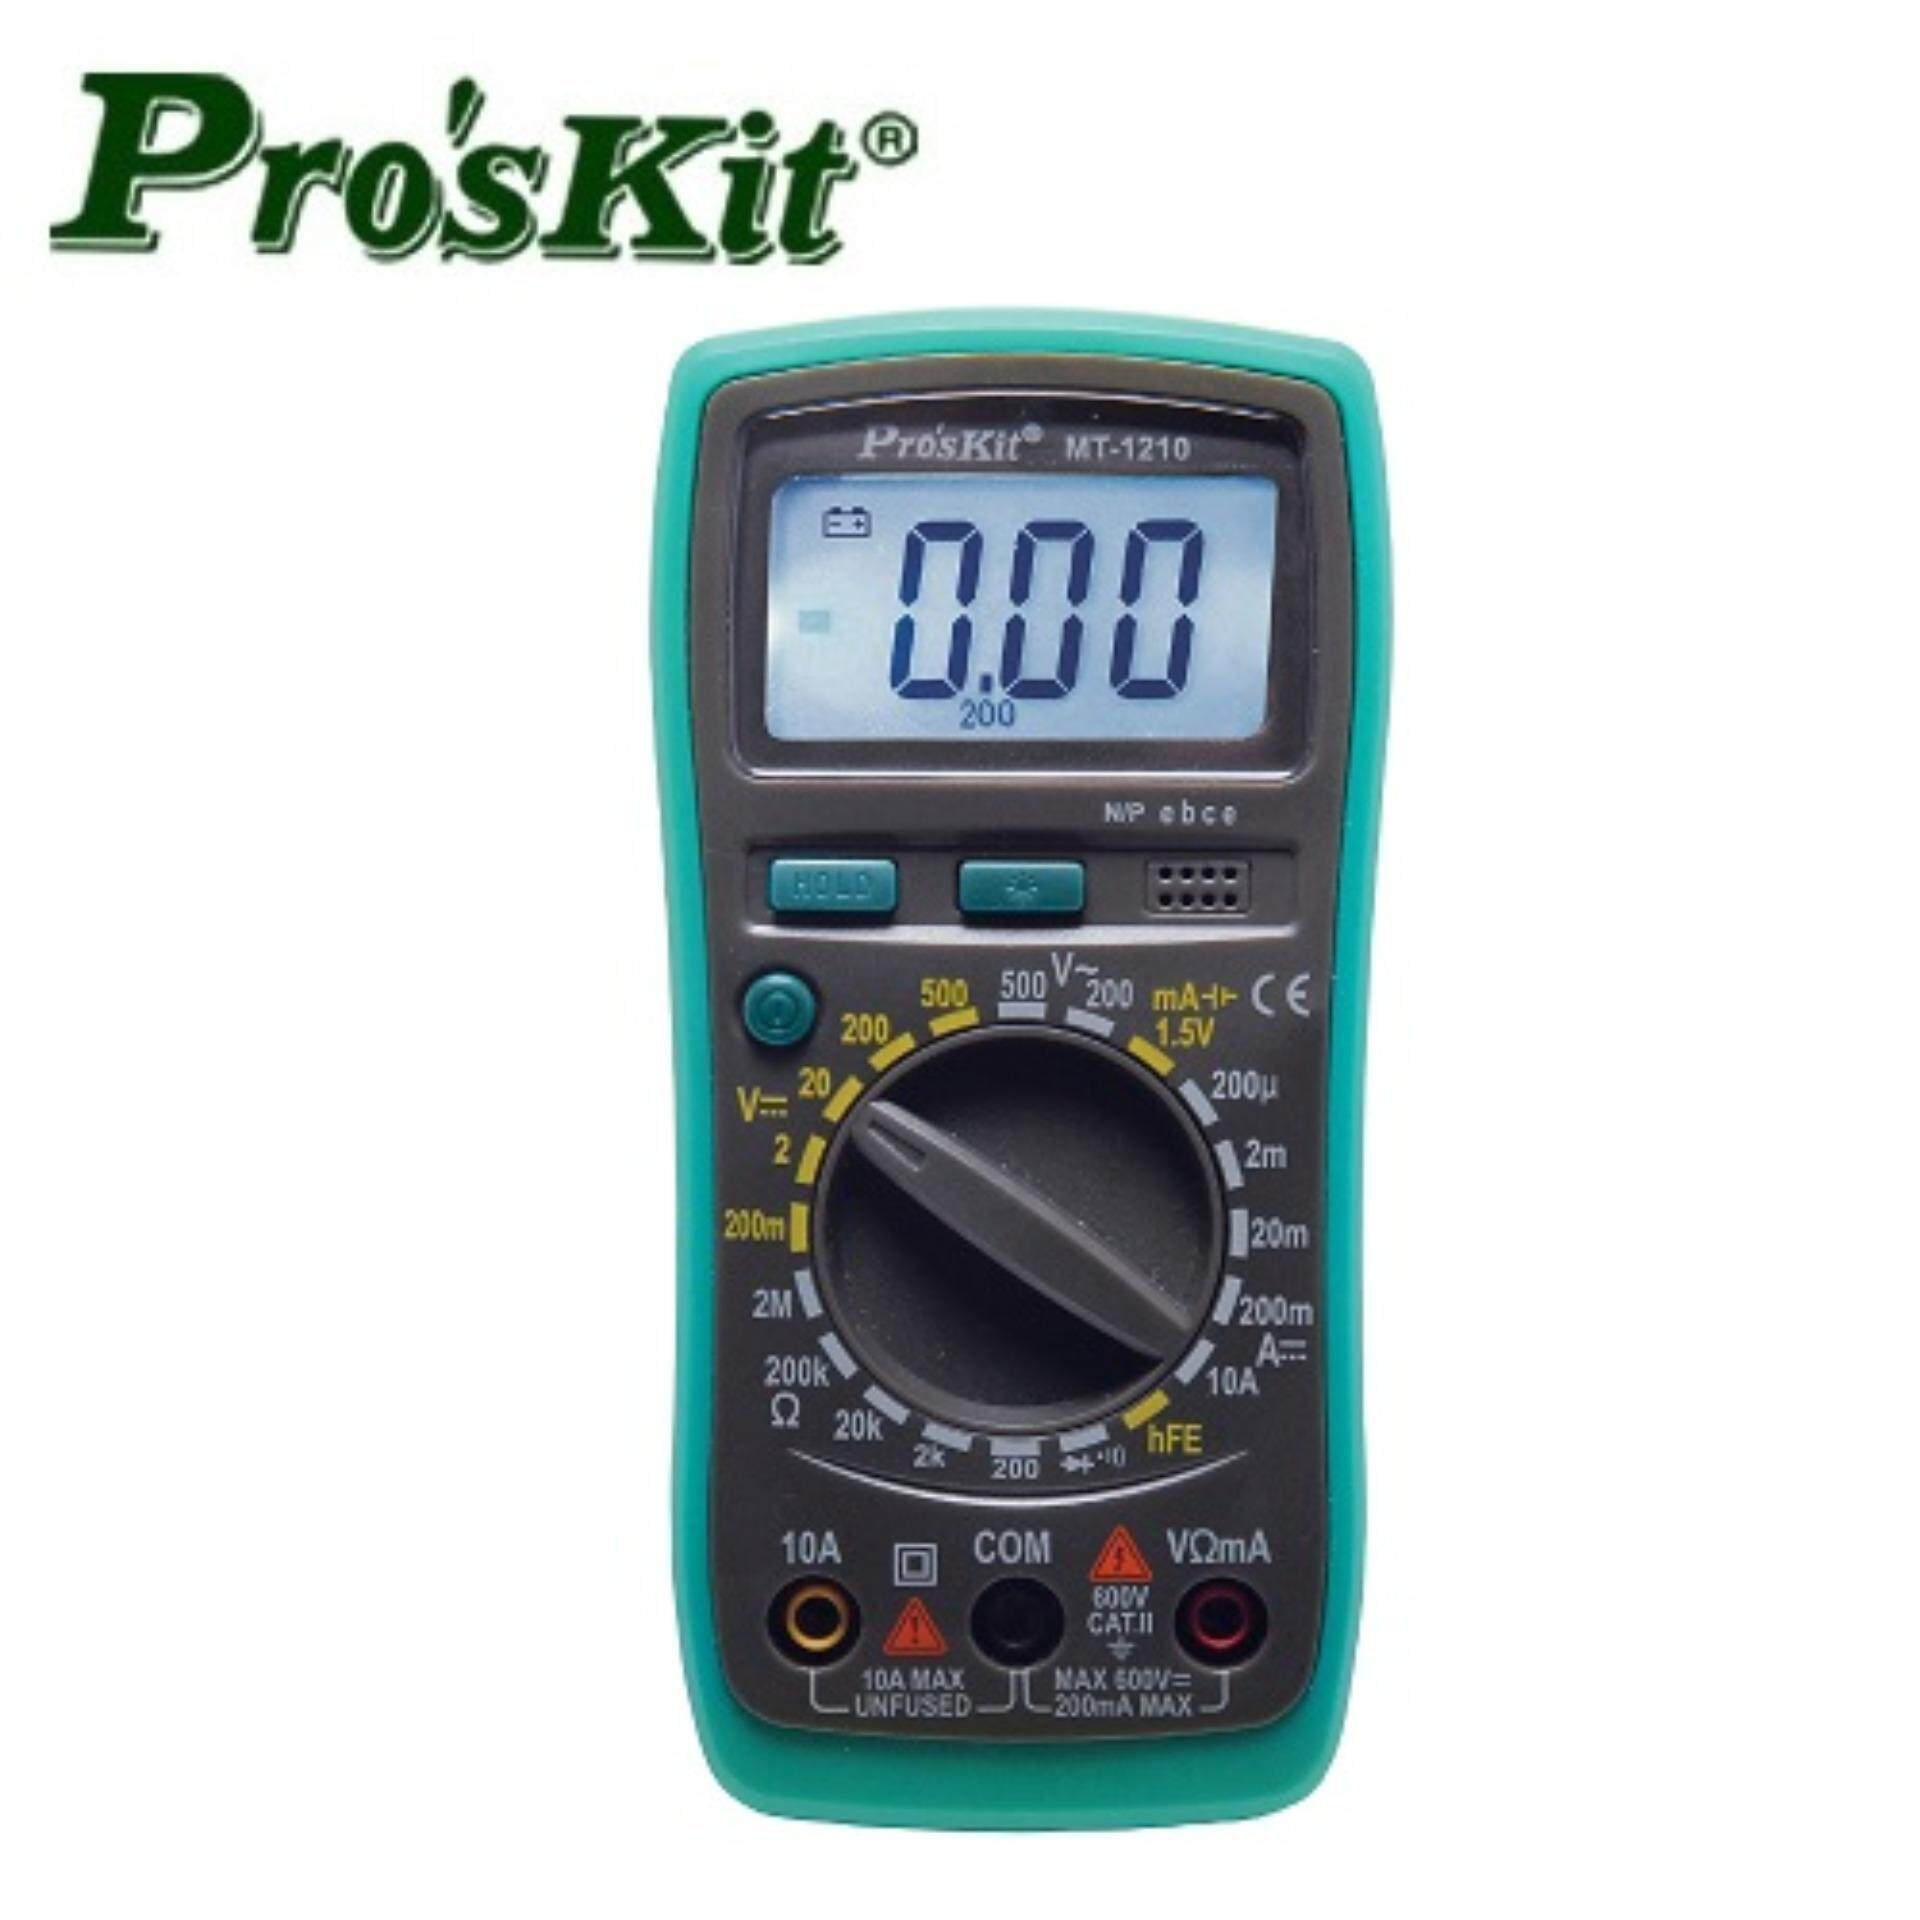 ProsKit MT-1210 3½ Compact Digital Multimeter Malaysia